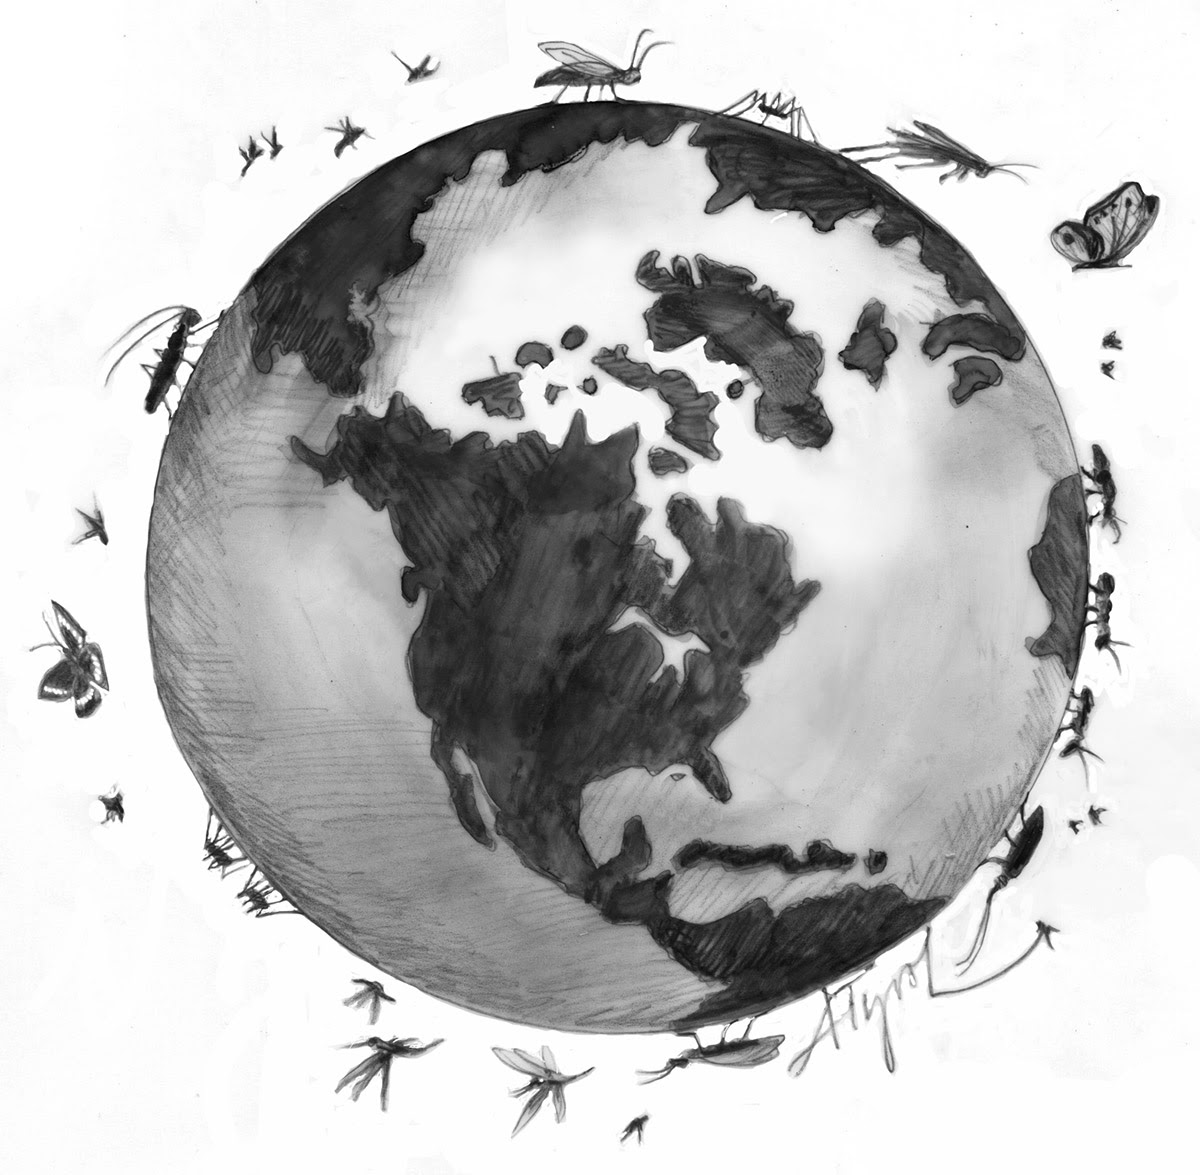 Insects around the world